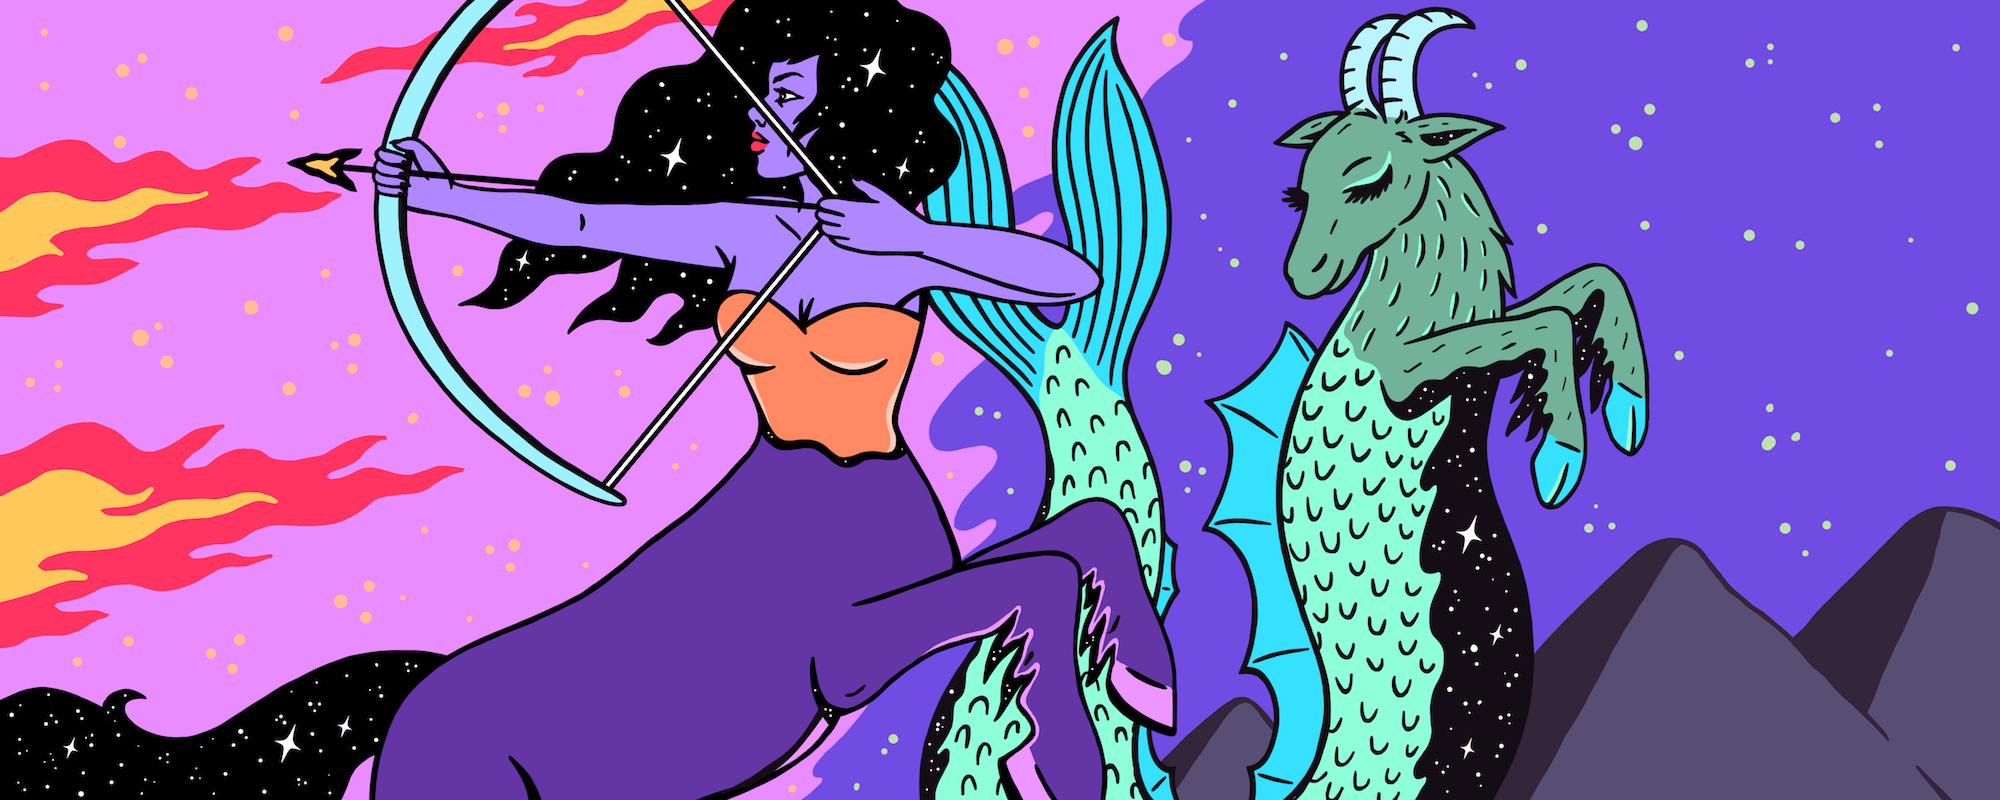 broadly horoscope december